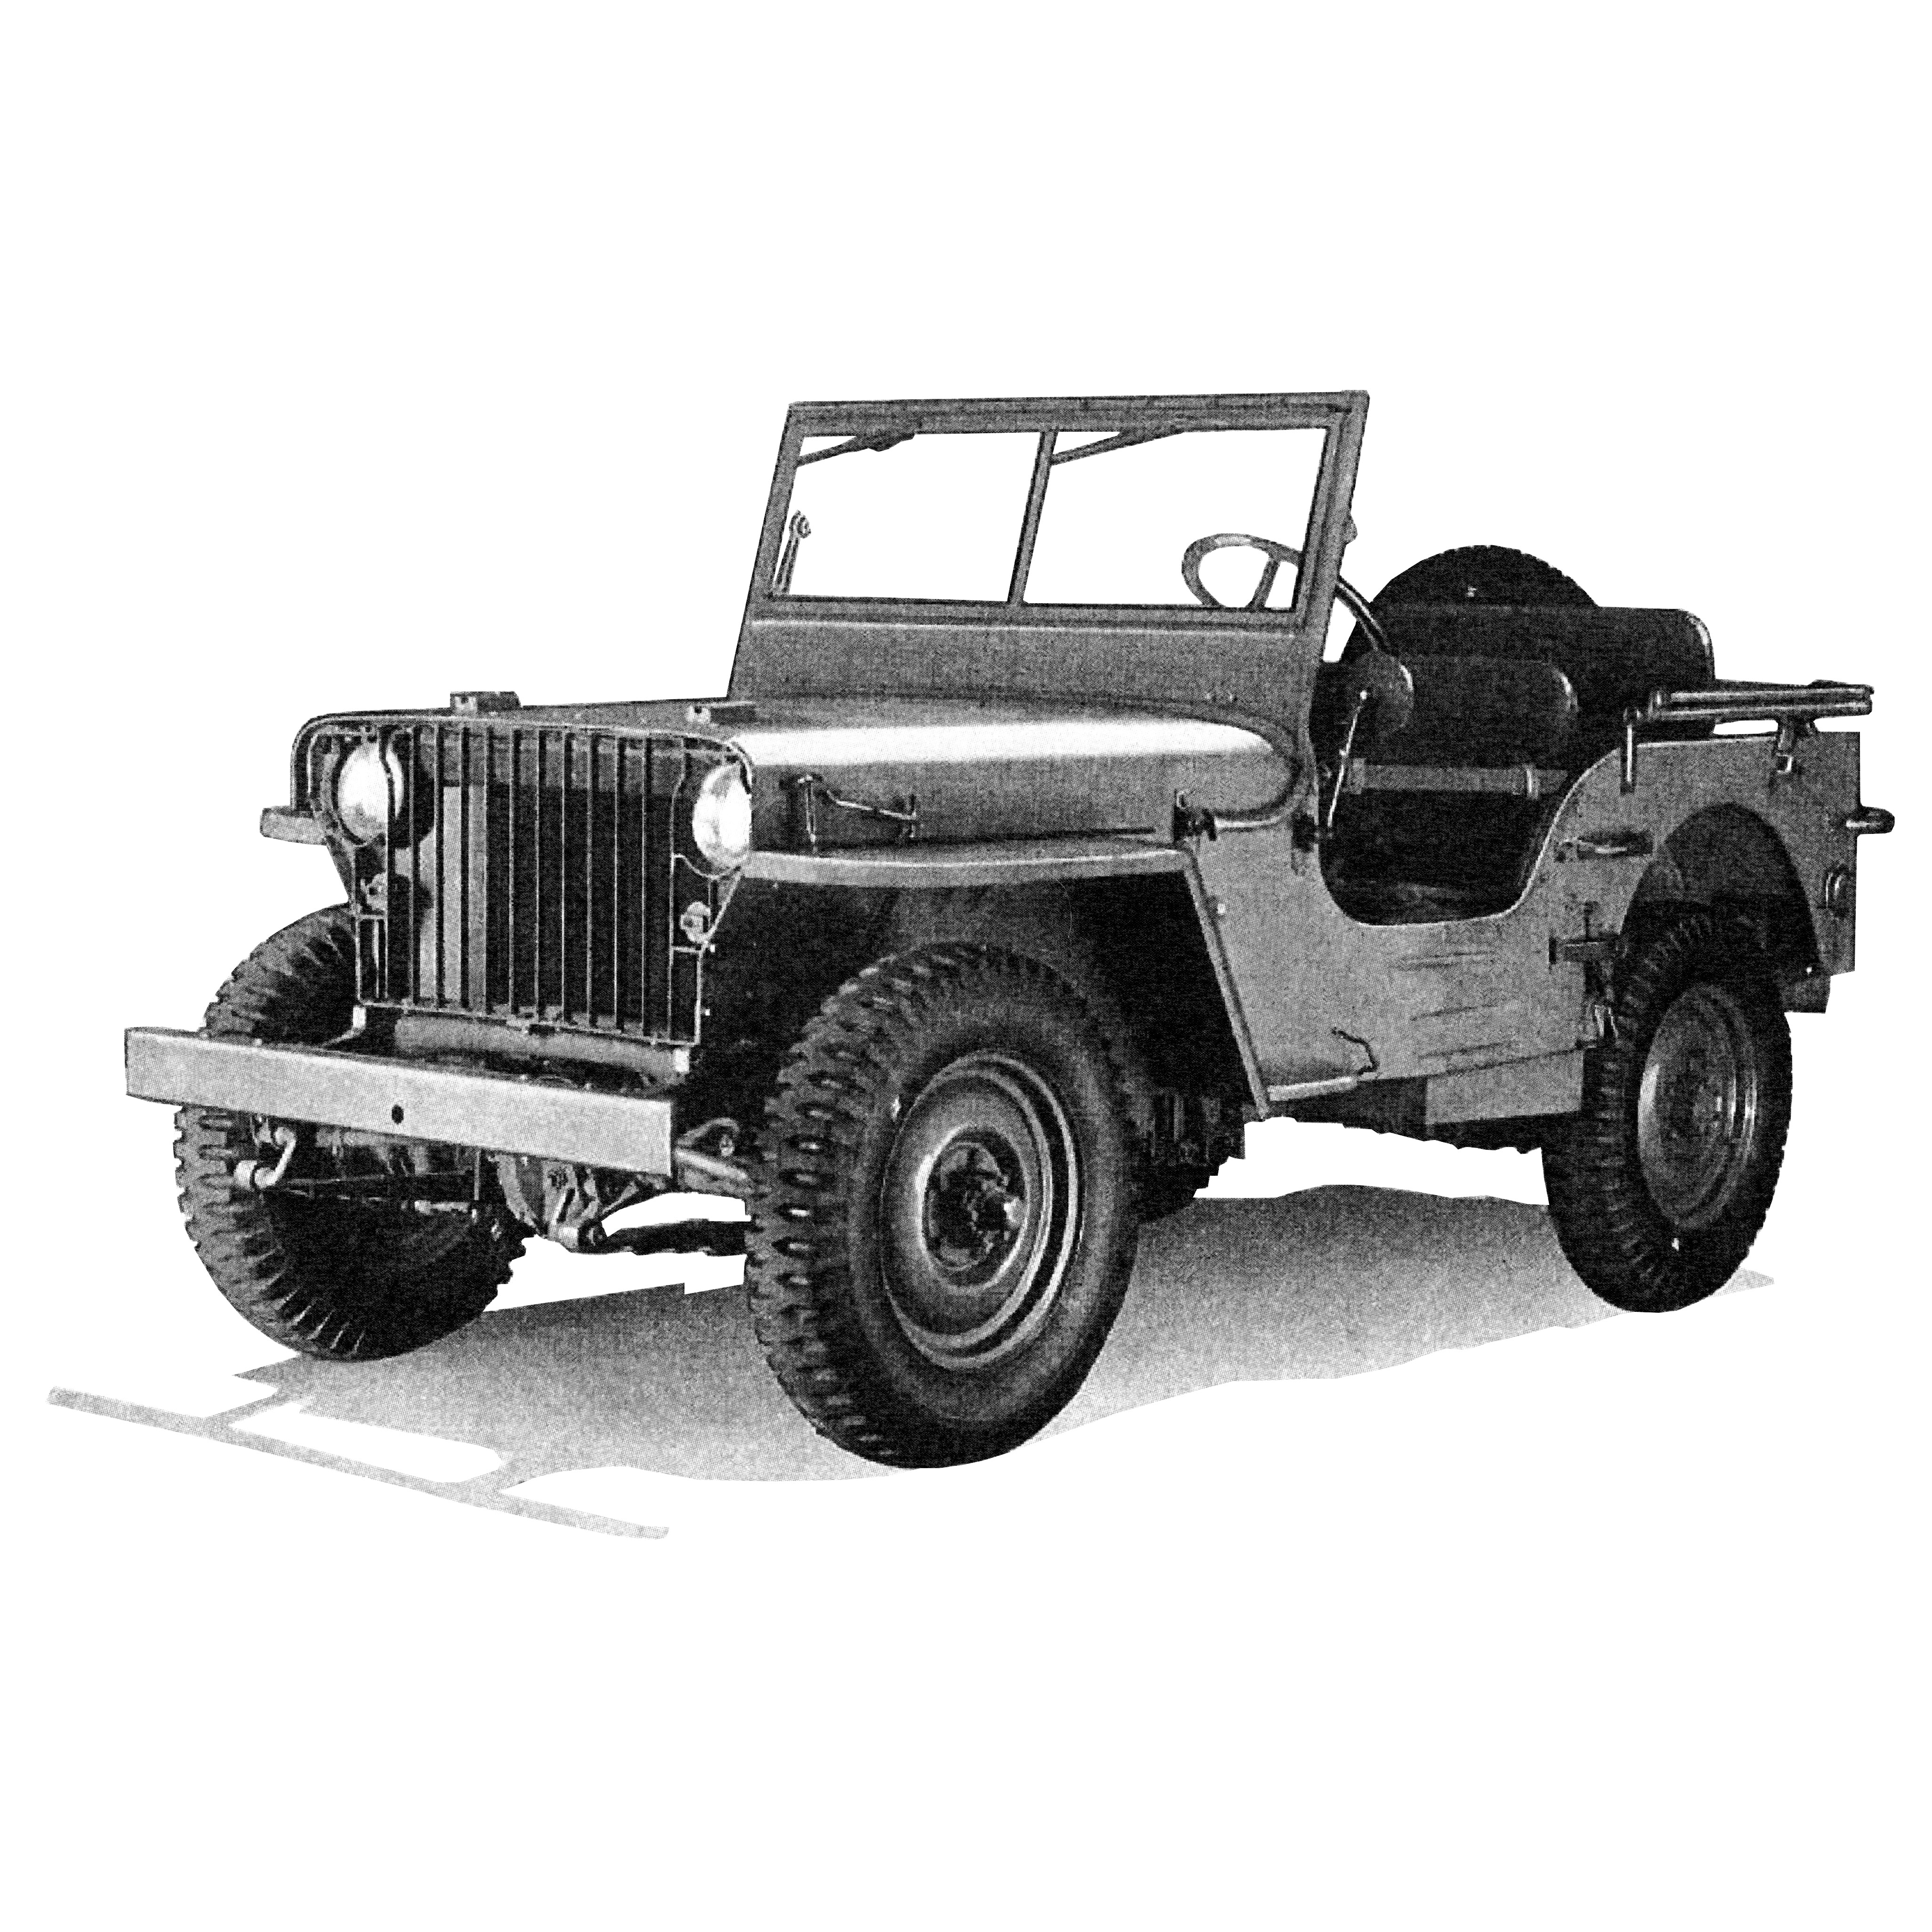 Willys Mb Wallpapers Military Hq Willys Mb Pictures 4k